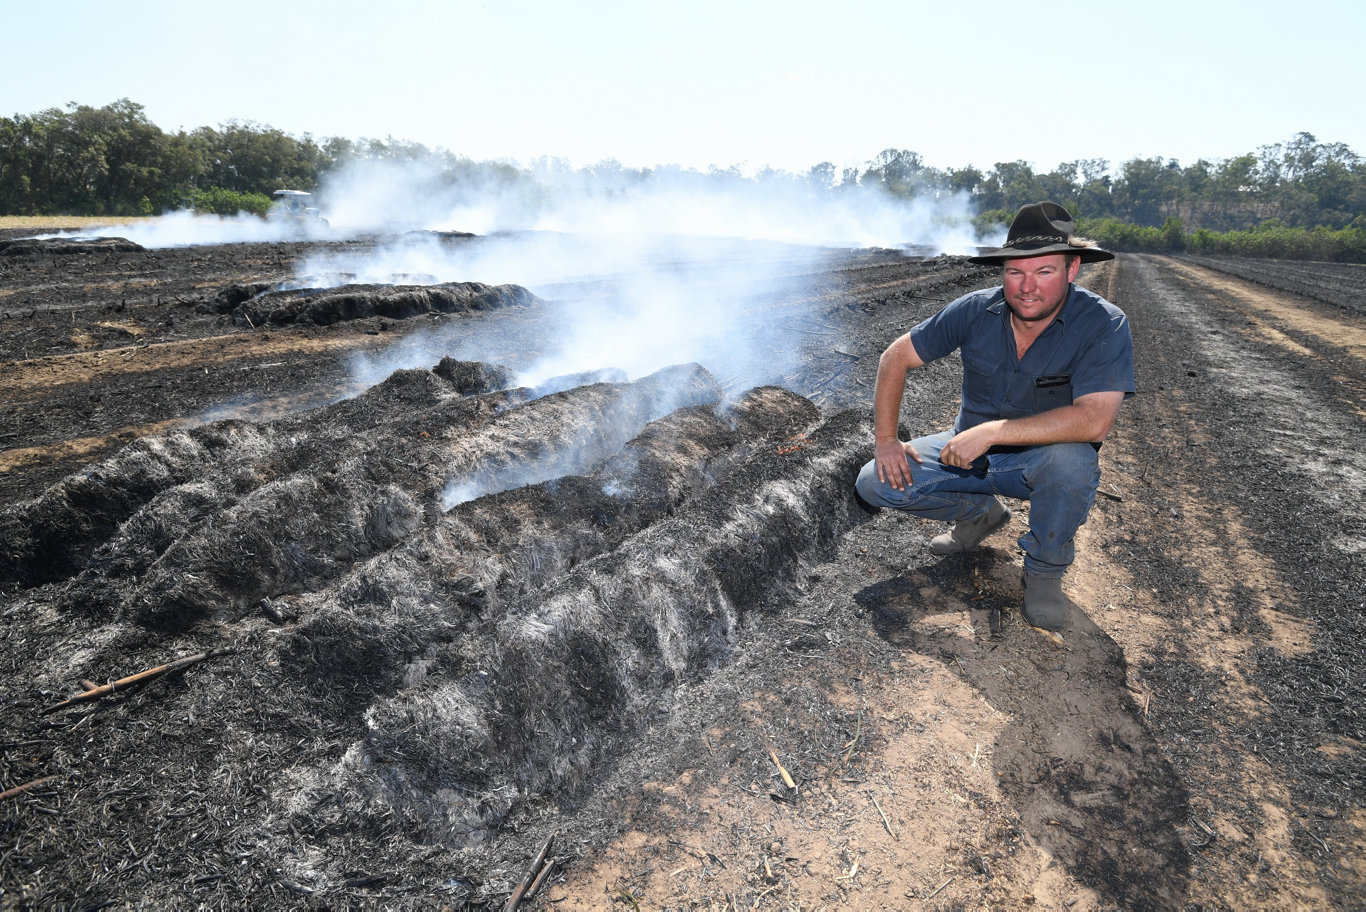 Walkers Point cane farmer Nathan Doyle with the remains of 500 bales of cane mulch that went up in smoke when 15 acres of cane paddock caught fire.